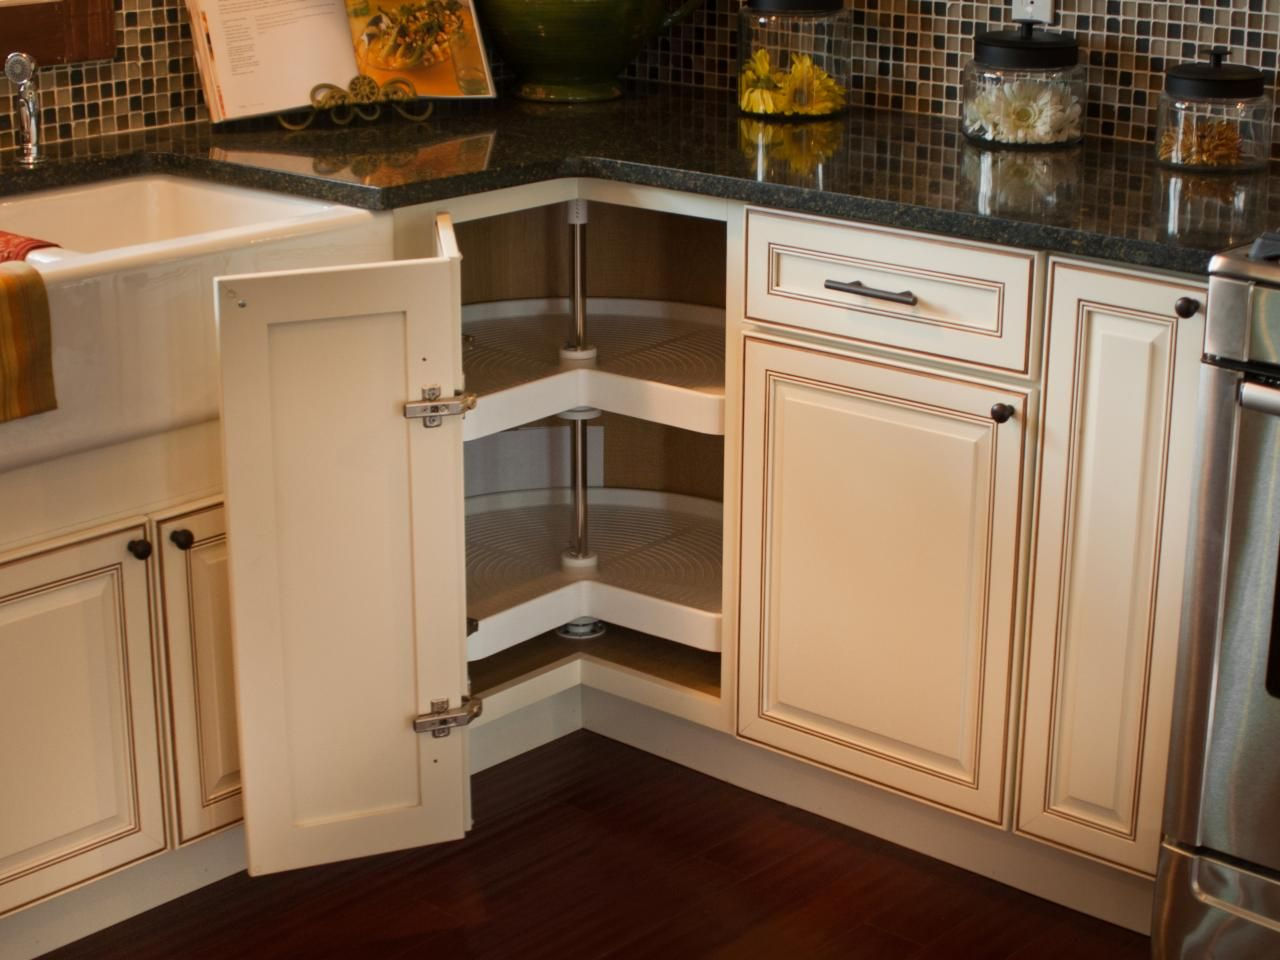 How To Build A Corner Kitchen Cabinet A Corner Cabinet Door Opens To Reveal A Kidney Shaped Lazy